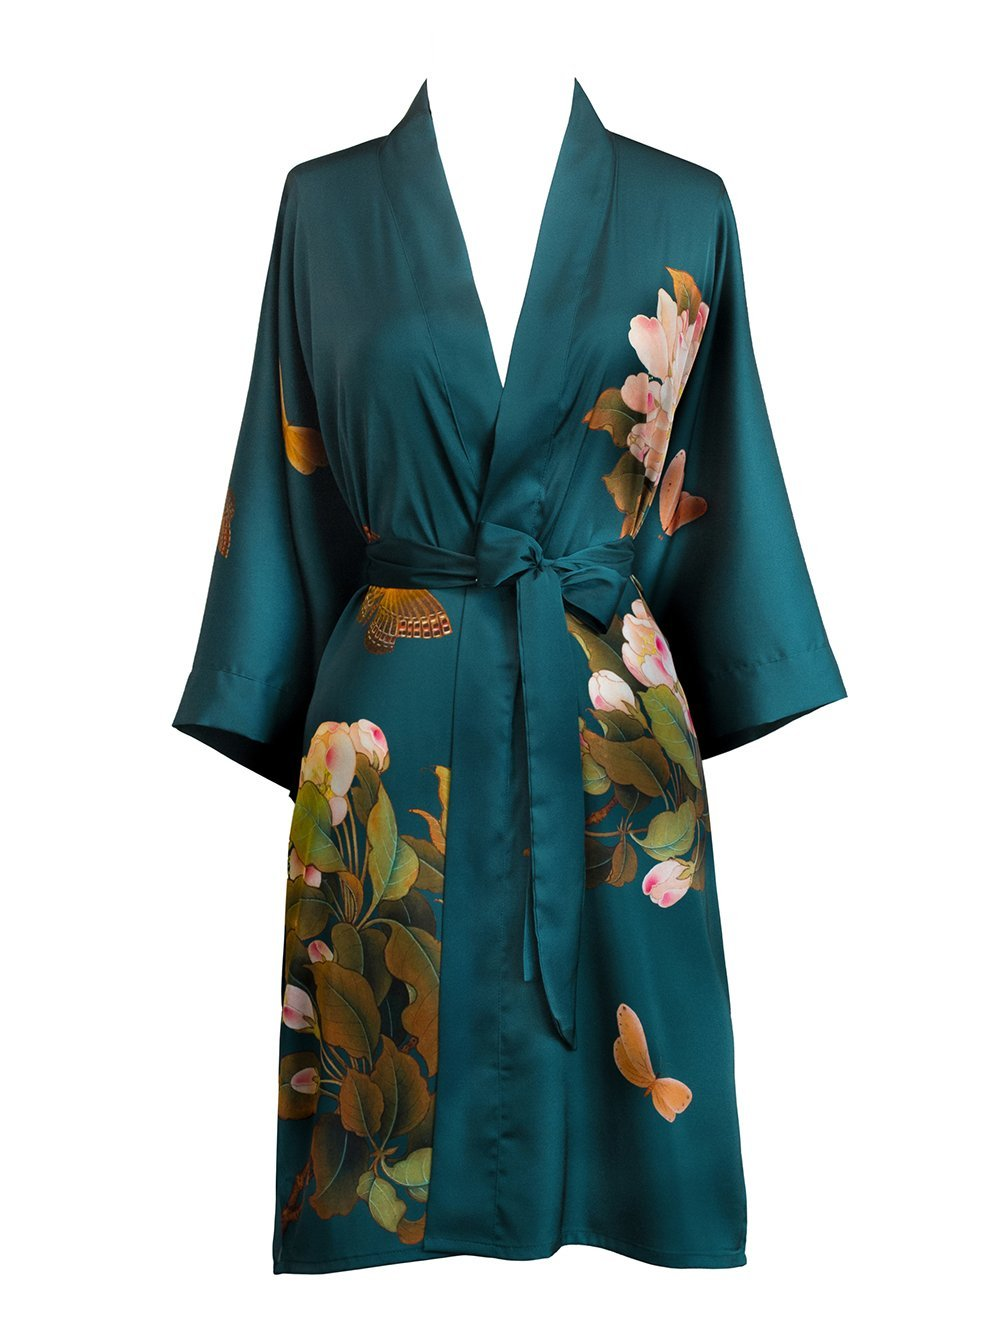 Old Shanghai Women's Kimono Robe Short - Watercolor Floral, peony & butterfly- vintage teal